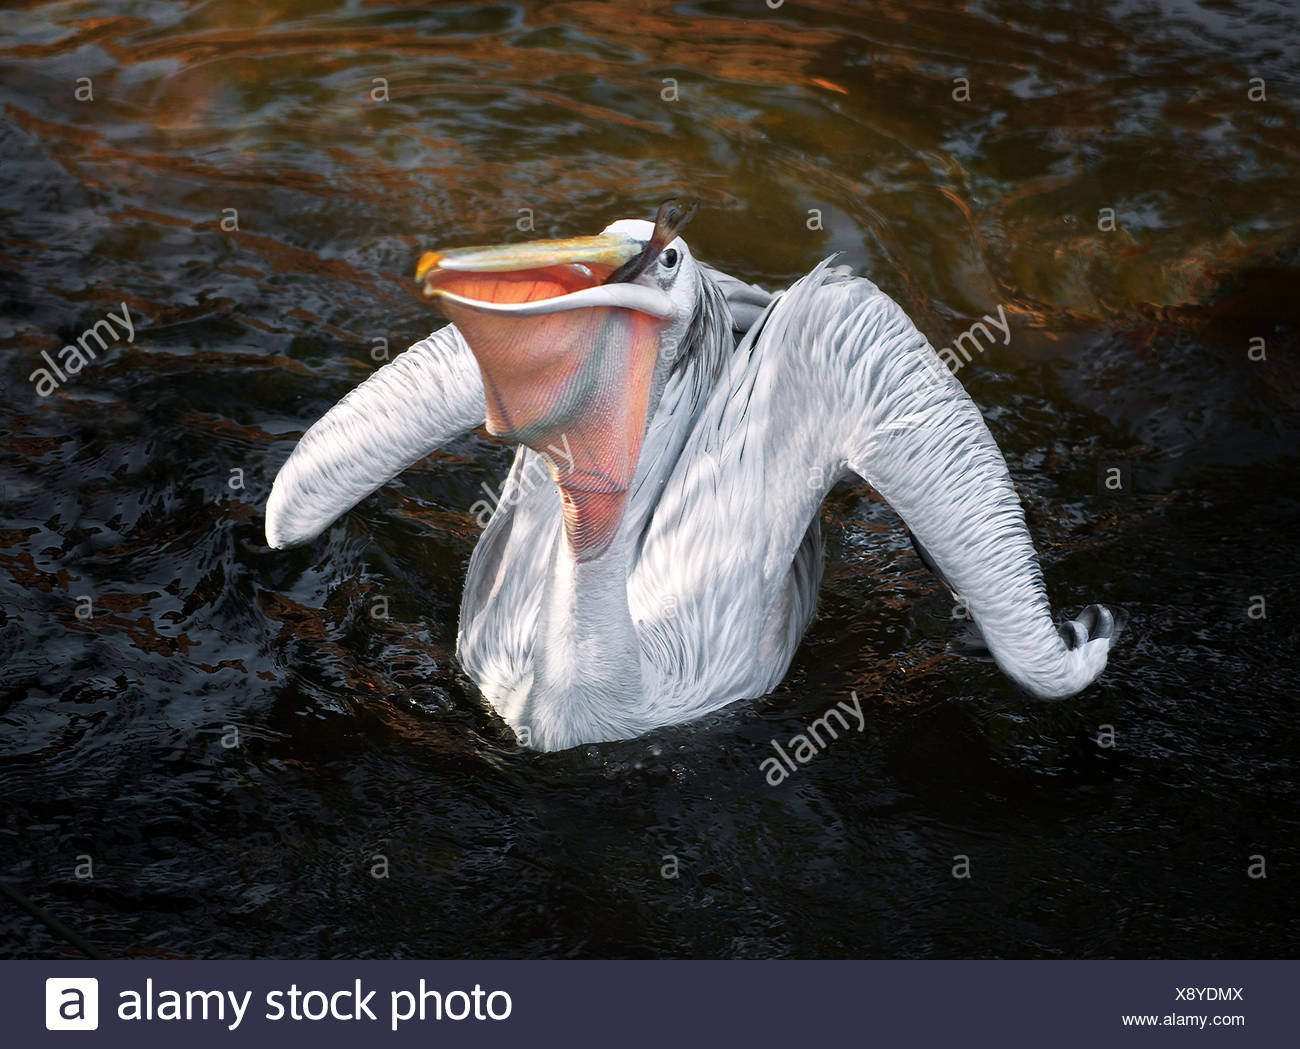 Pelican (Pelecanus onocrotalus) on water with fish in beak - Stock Image